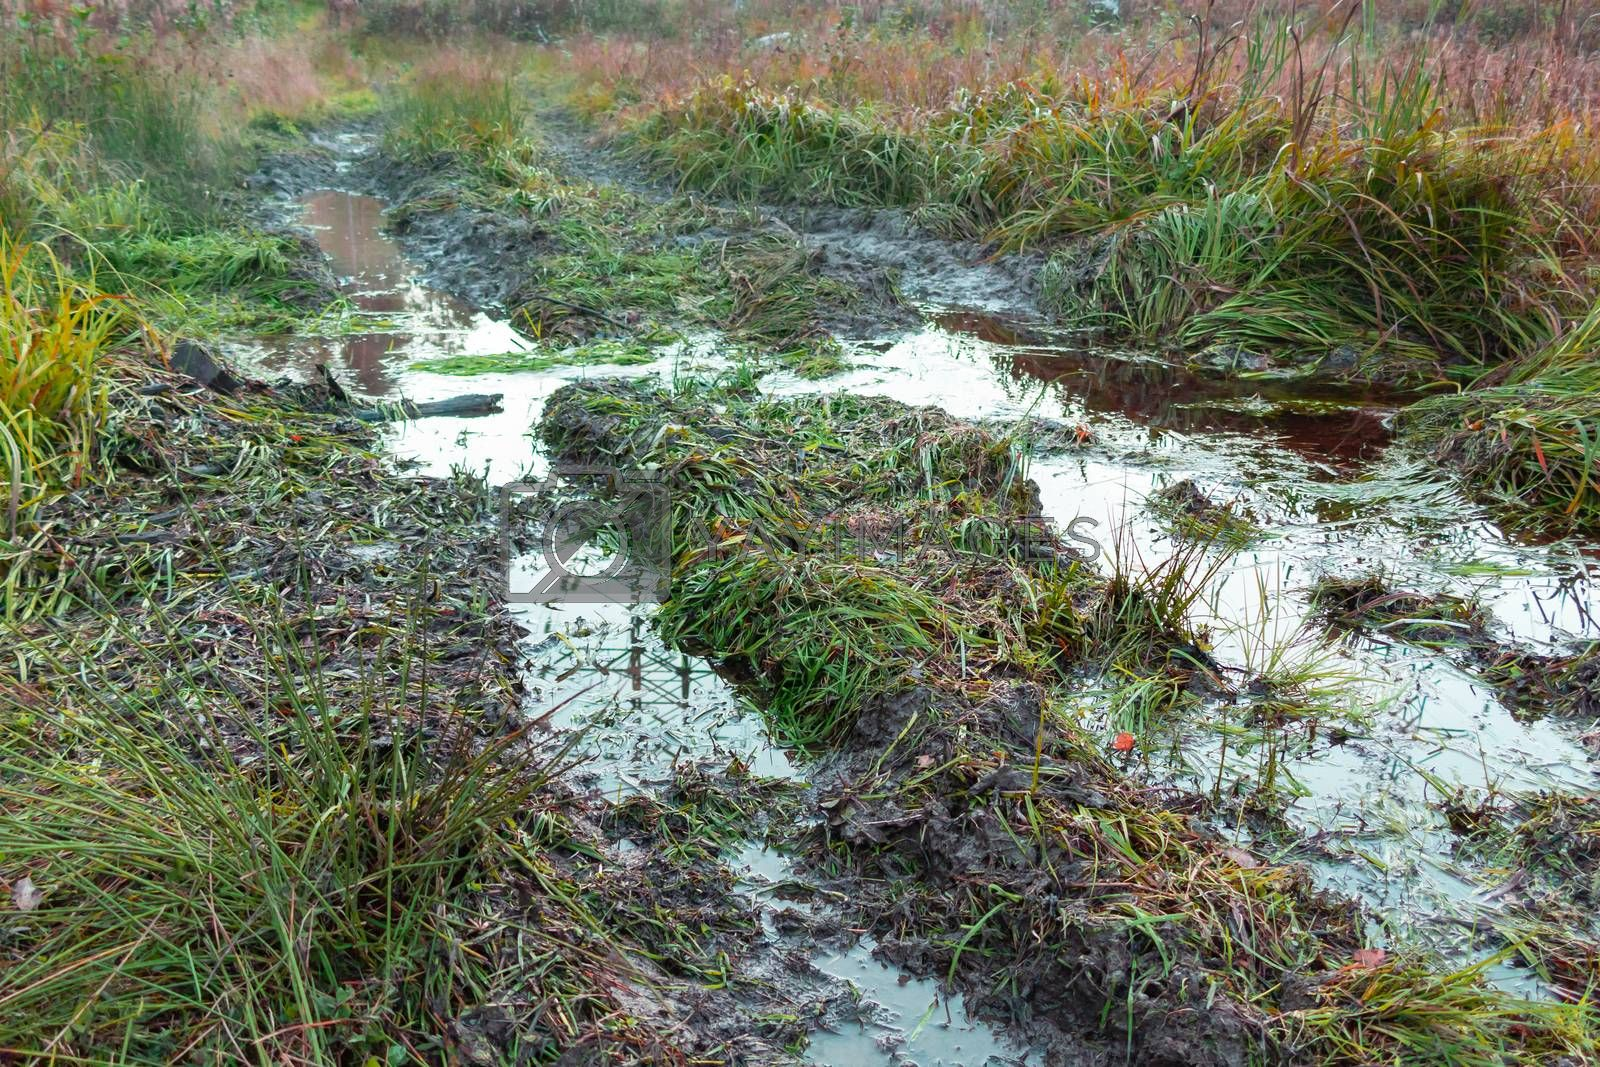 Off-road track in a countryside landscape with a muddy road and puddle. Extreme path rural dirt. Summer landscape with grass and traces from the passage of transport on the surface.